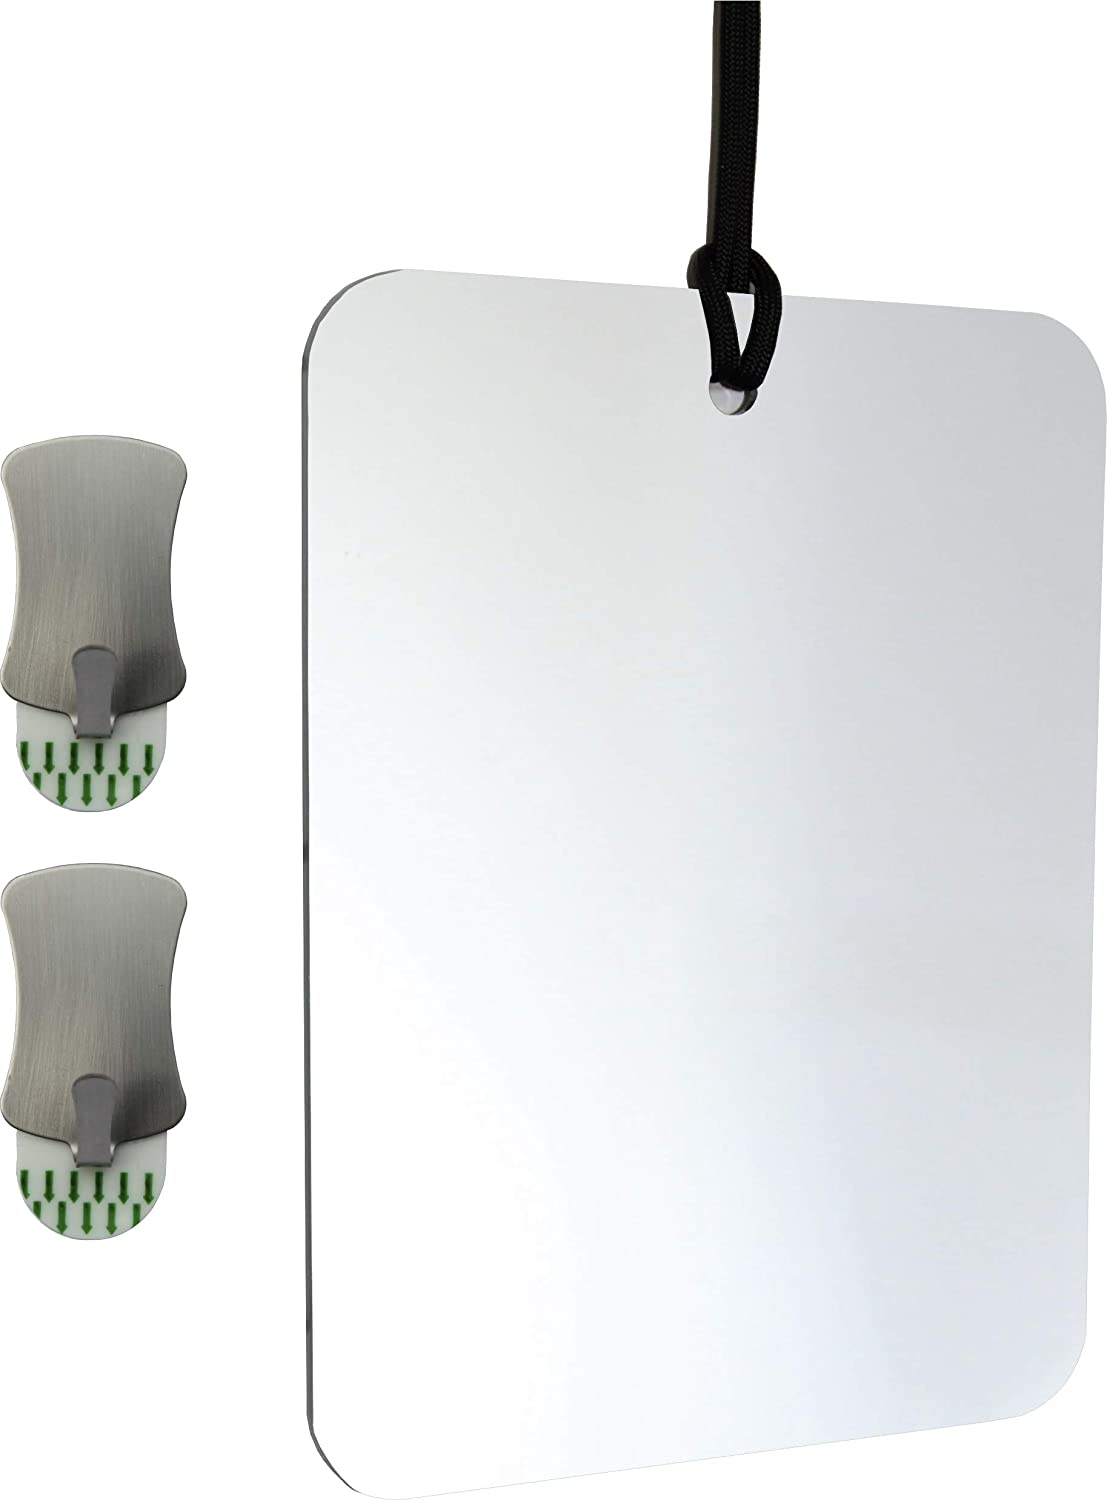 ReflectXL Shower Mirror - Use Shower Water Heat, Not Short Lived Coatings, to Repel Fog For 100% Reliability - Shatterproof - Easily Eliminate Fog and Shadows for a Clear Fogless Reflection (Unclad)